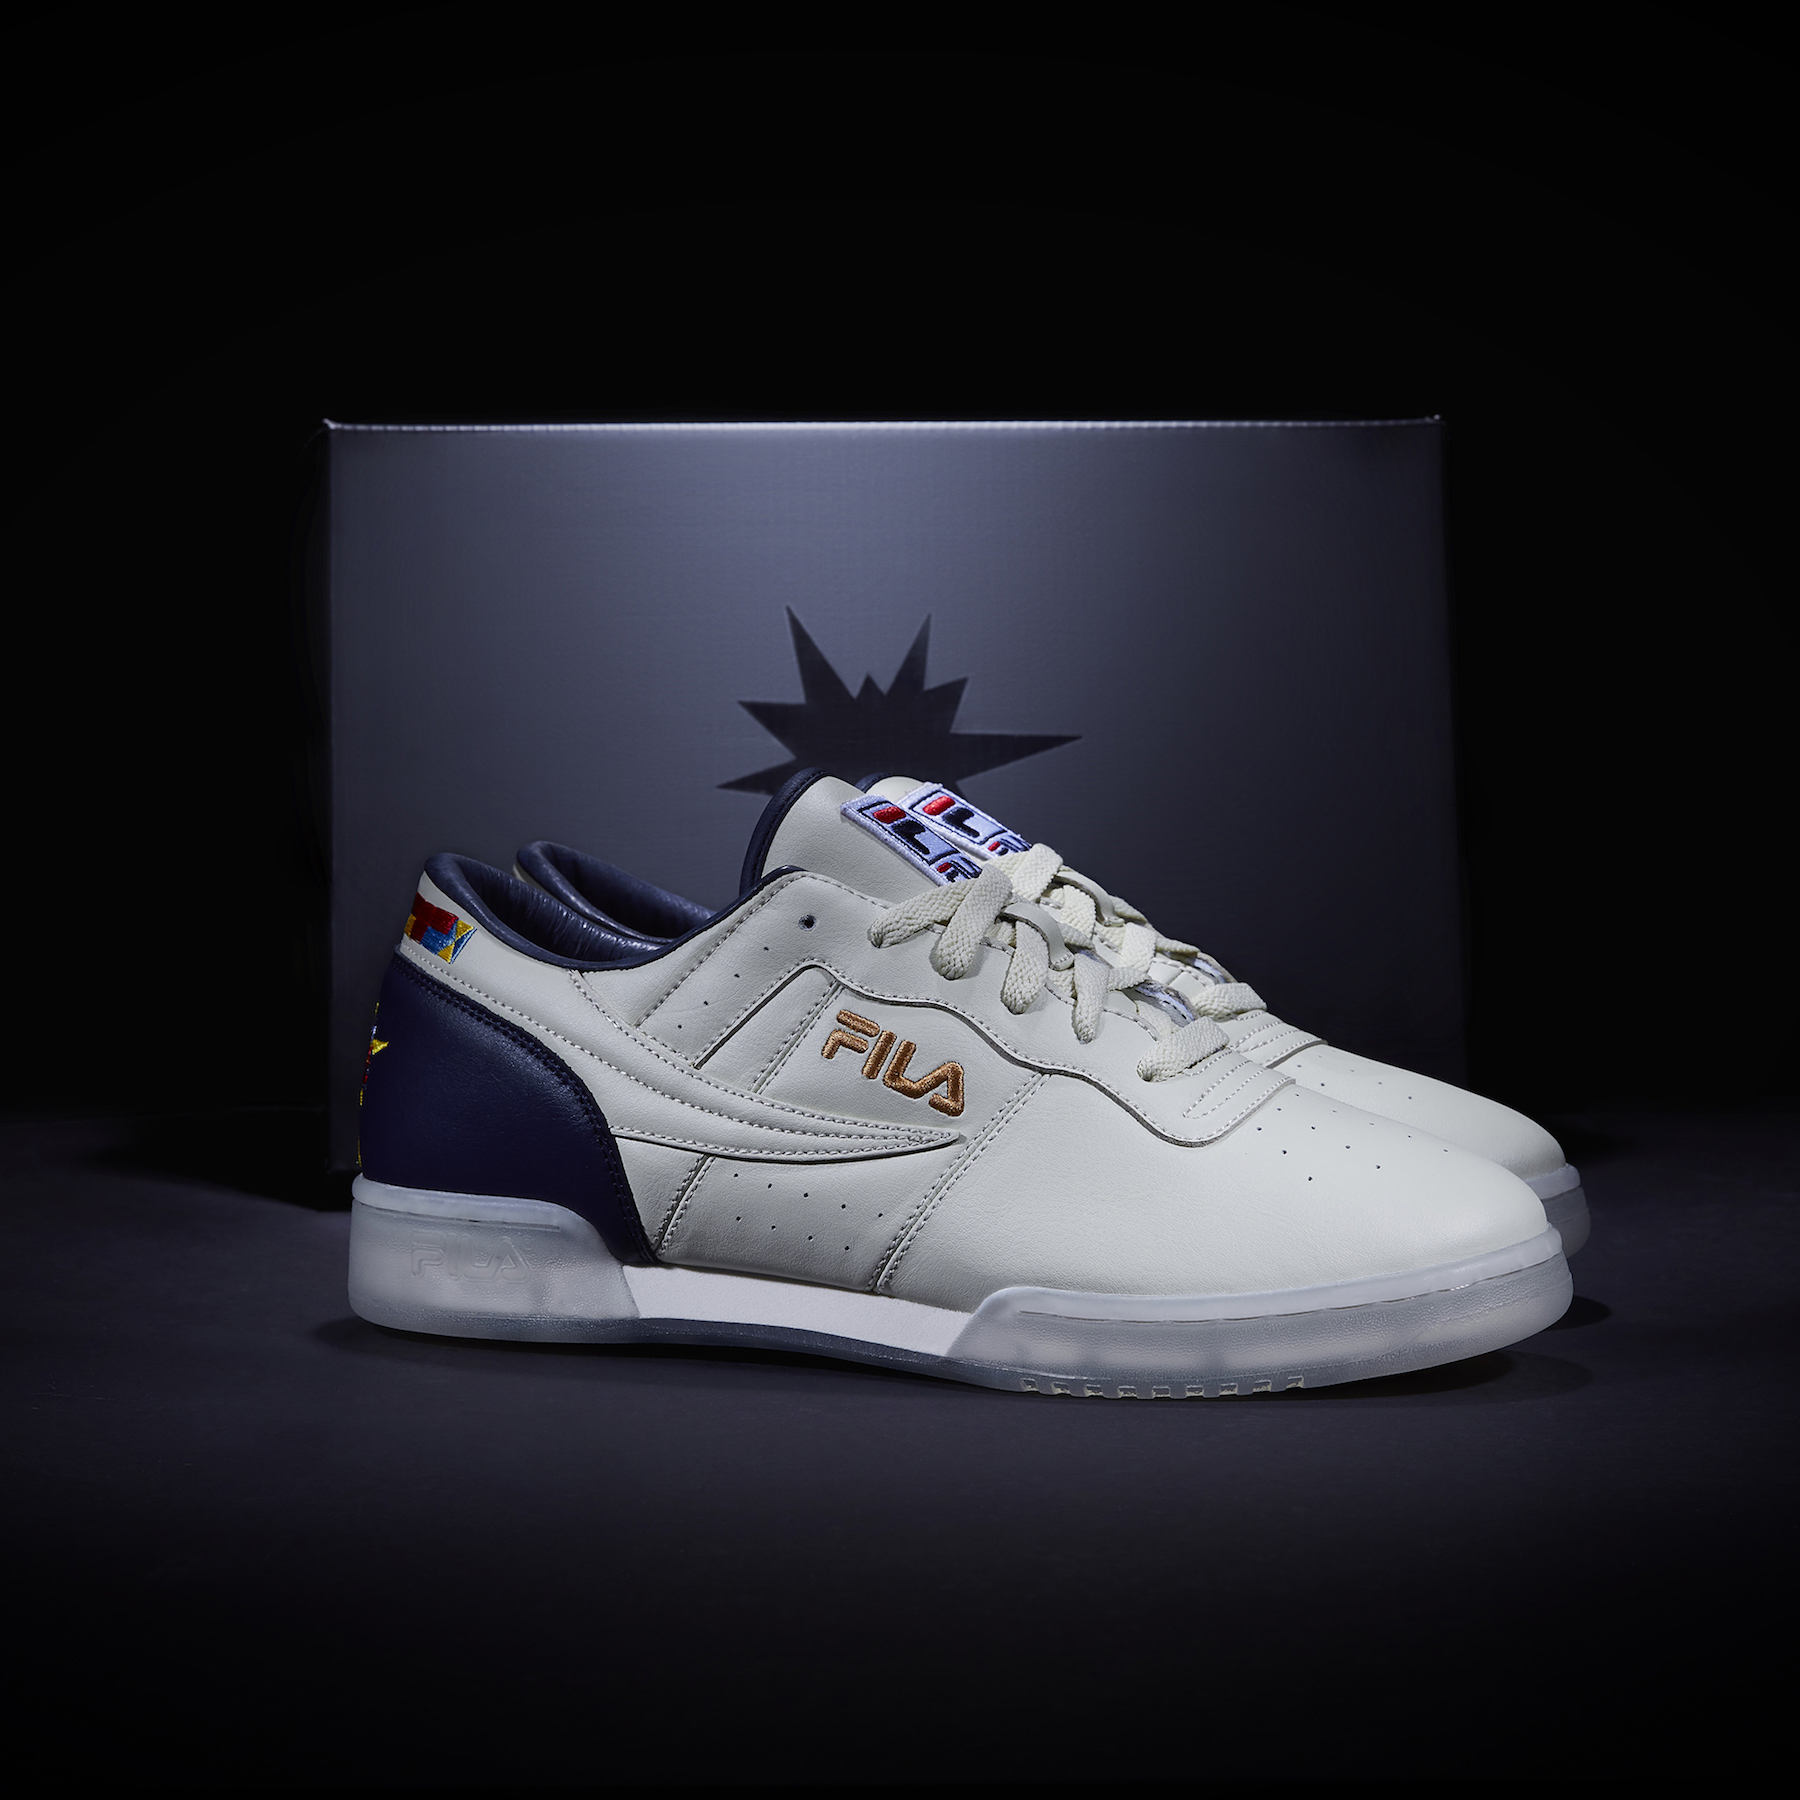 detailed look cfa2d 0ddb6 ... Fila Original Fitness Stan Lee custom 5 ...